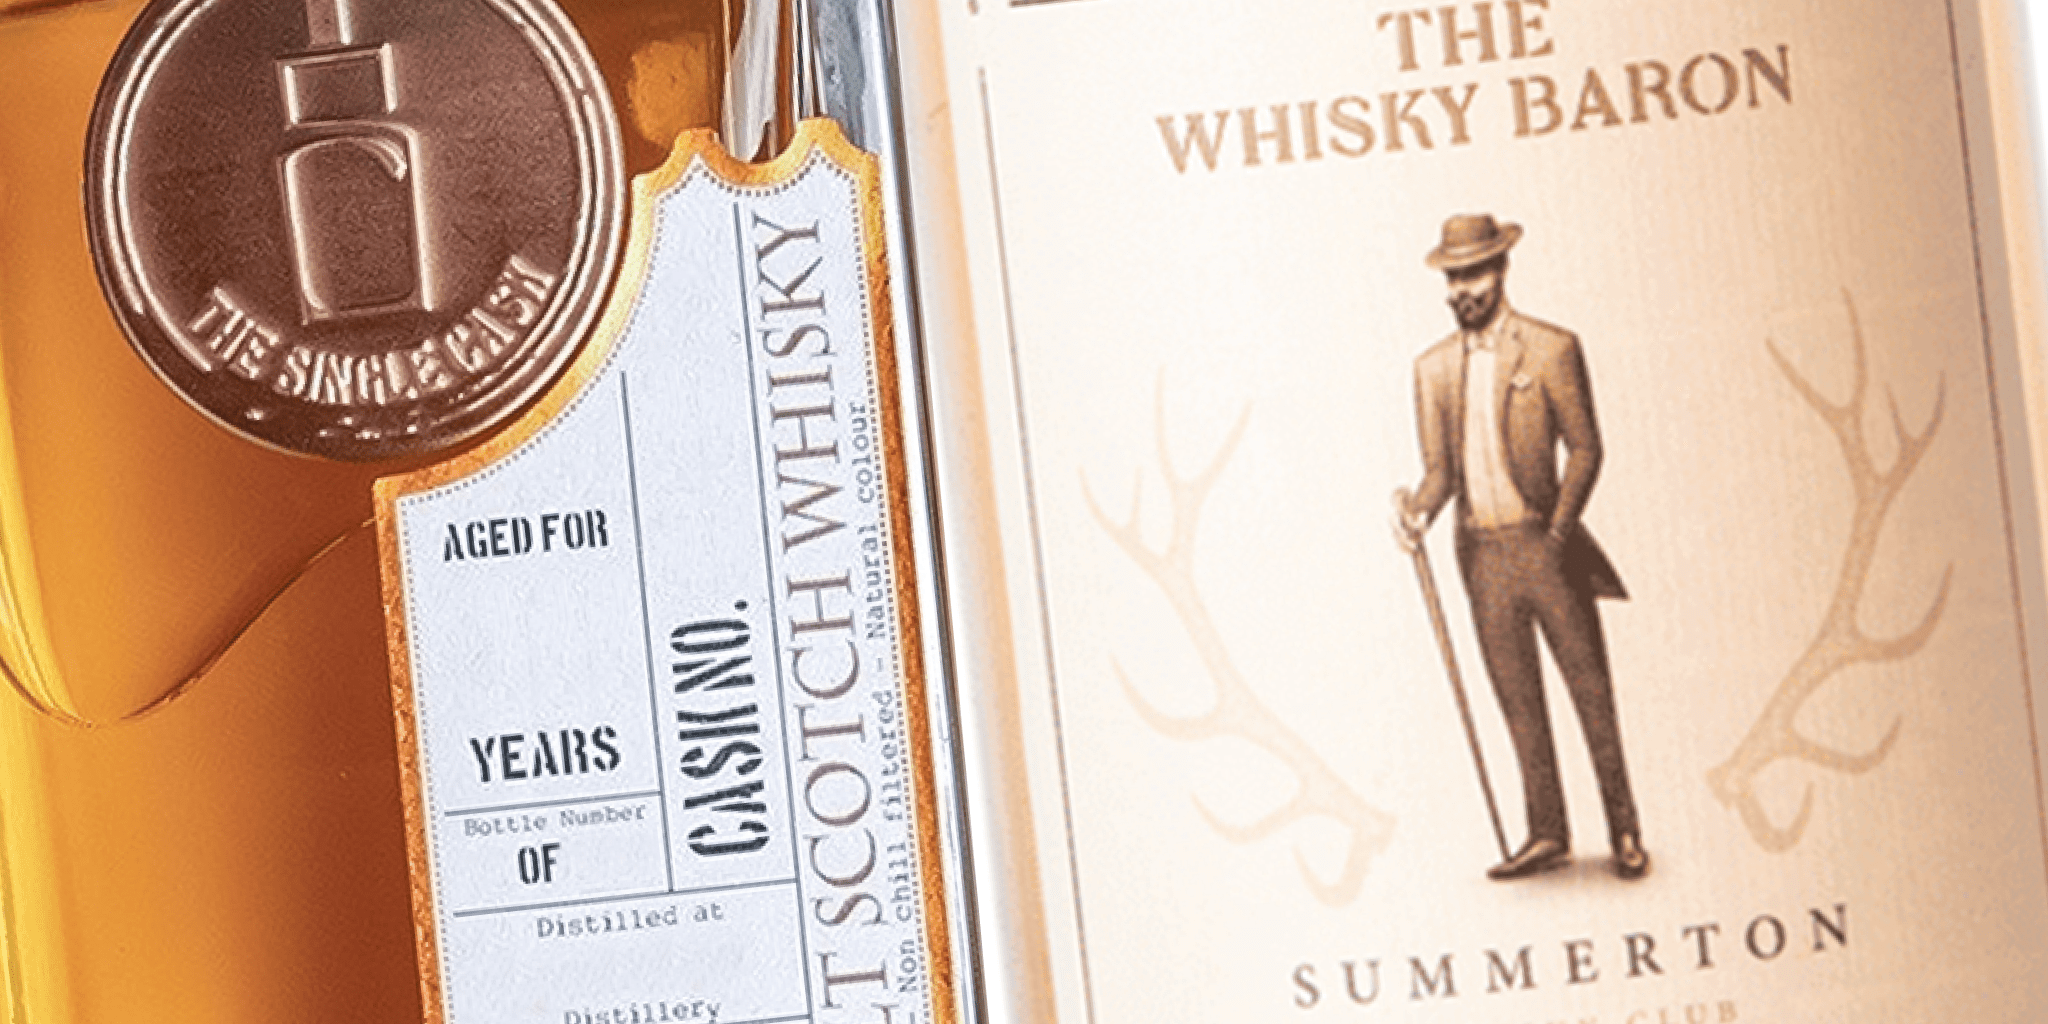 Announcing our June Club Bottle for Existing and New members, Summerton Whisky Club - Excellence in Whisky